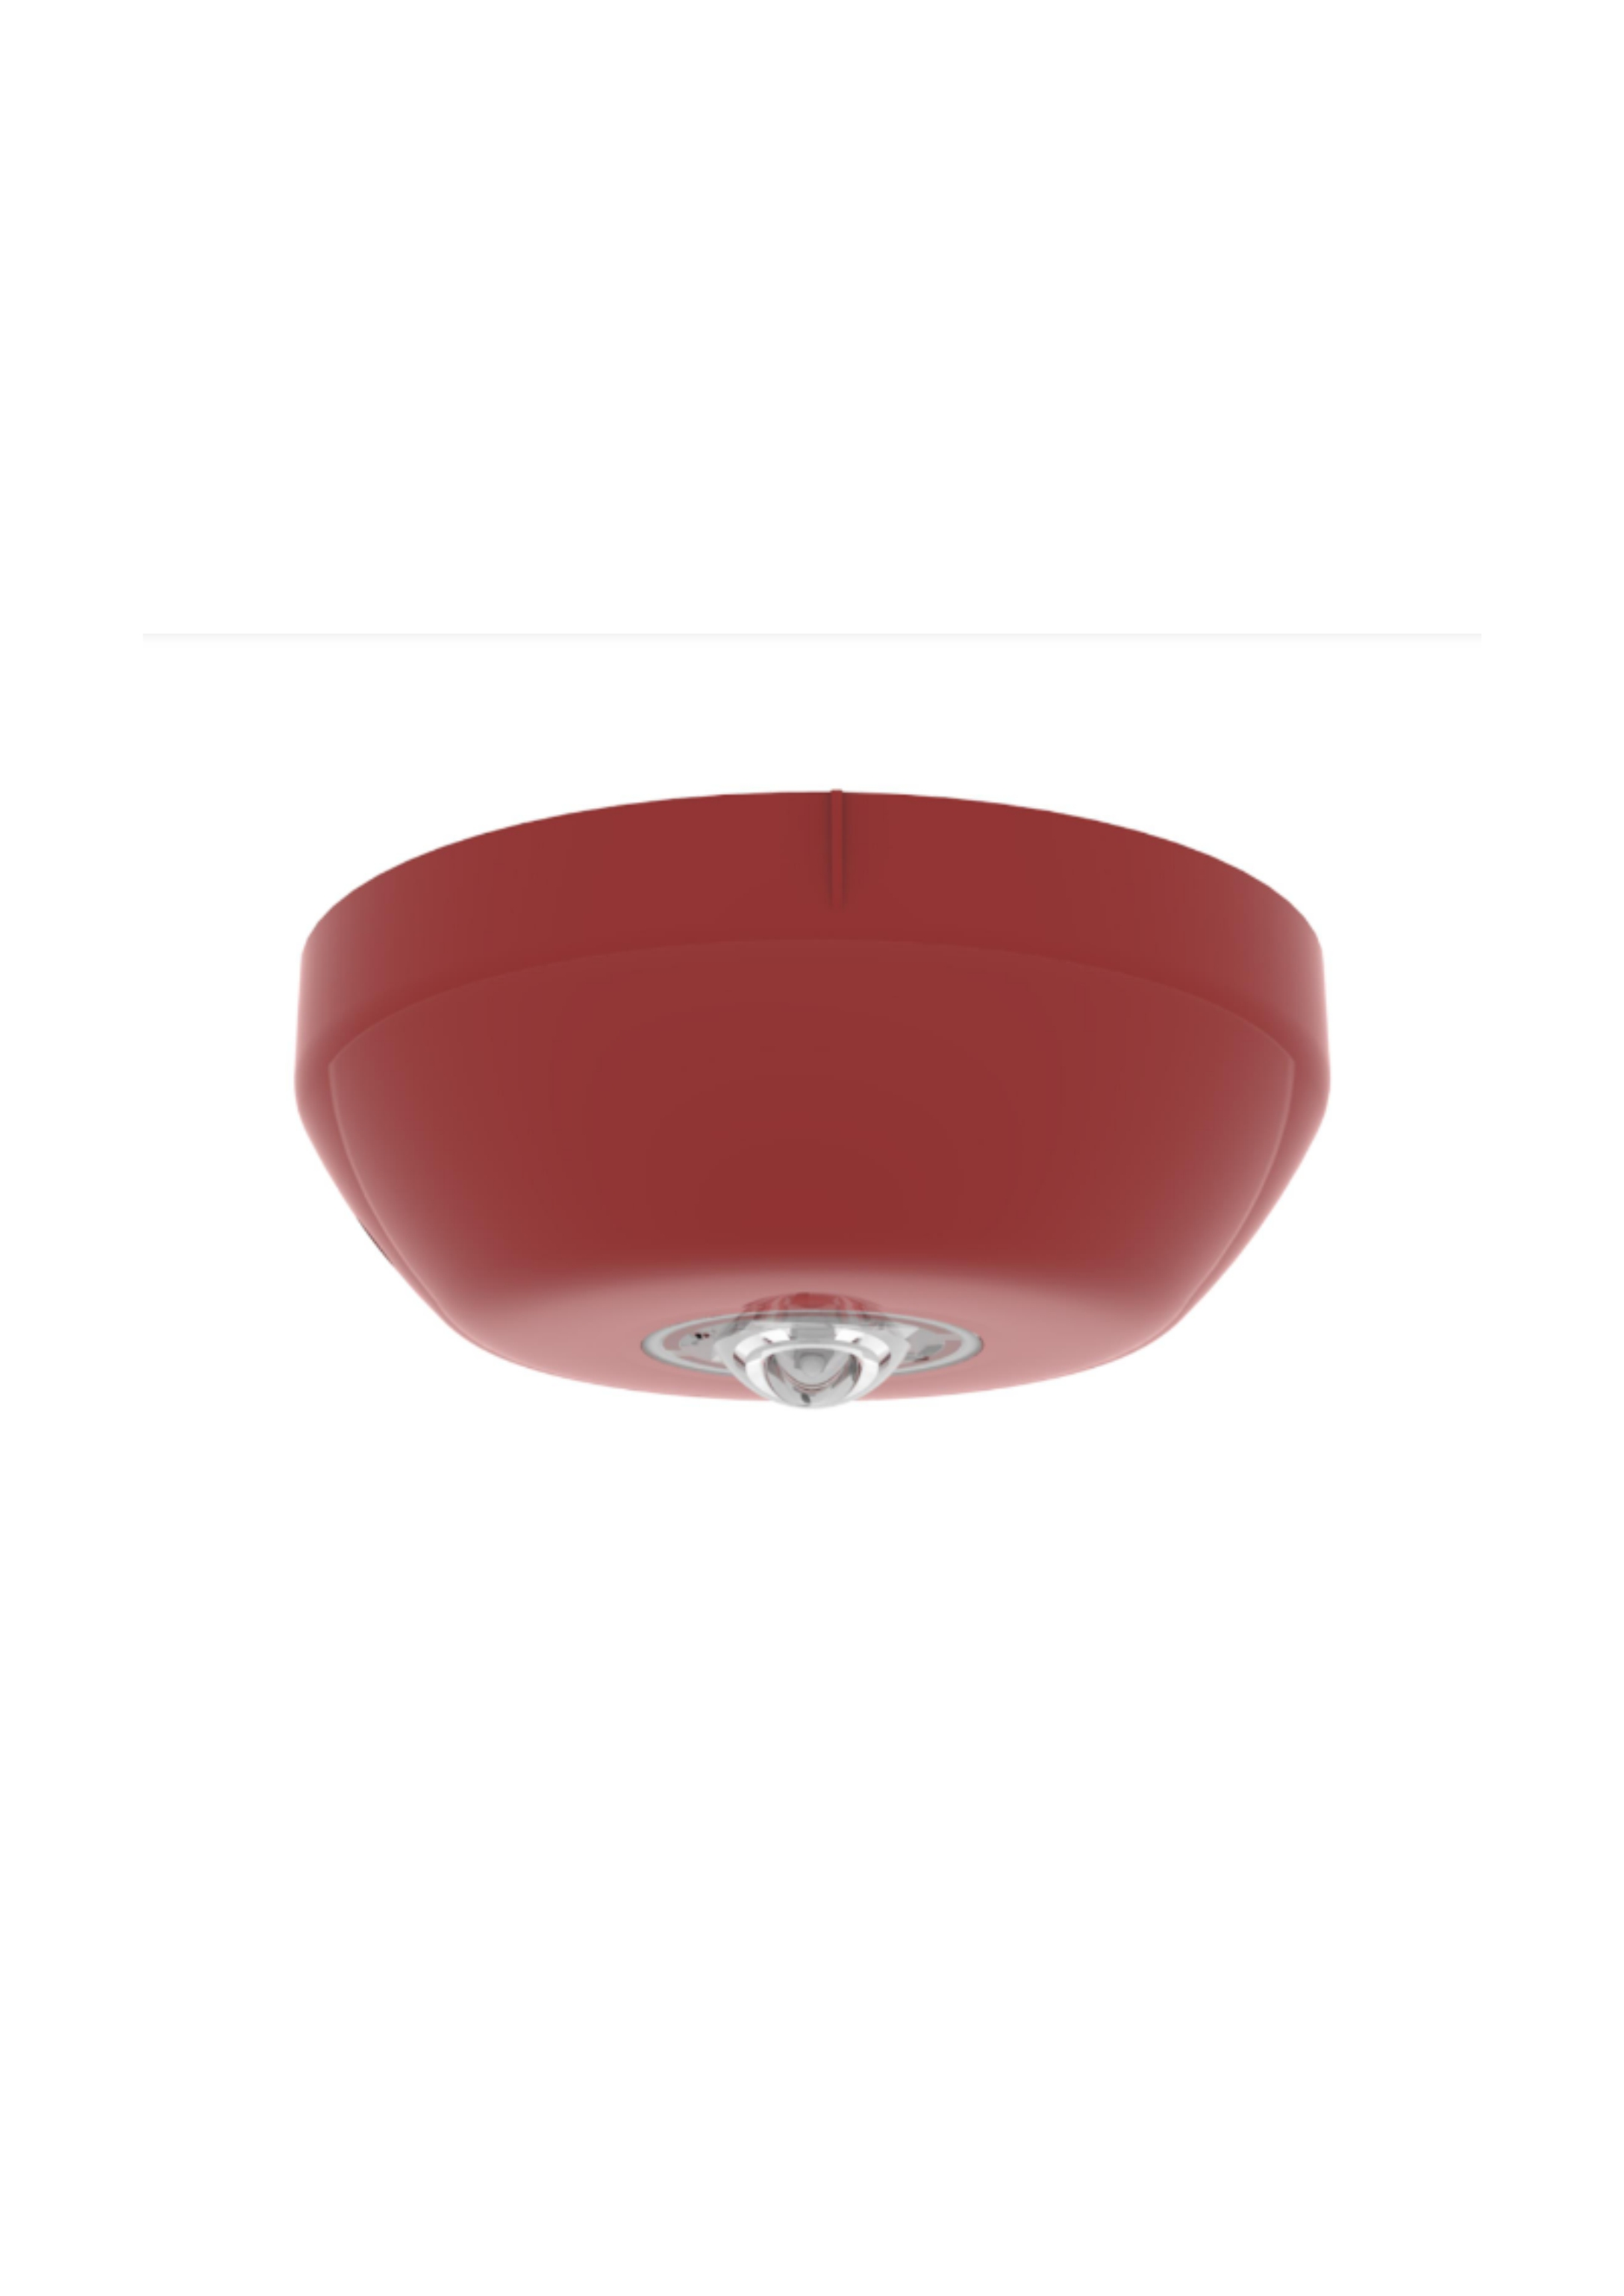 Ceiling Beacon - Red case, red LEDs (7.5m) 1460250...